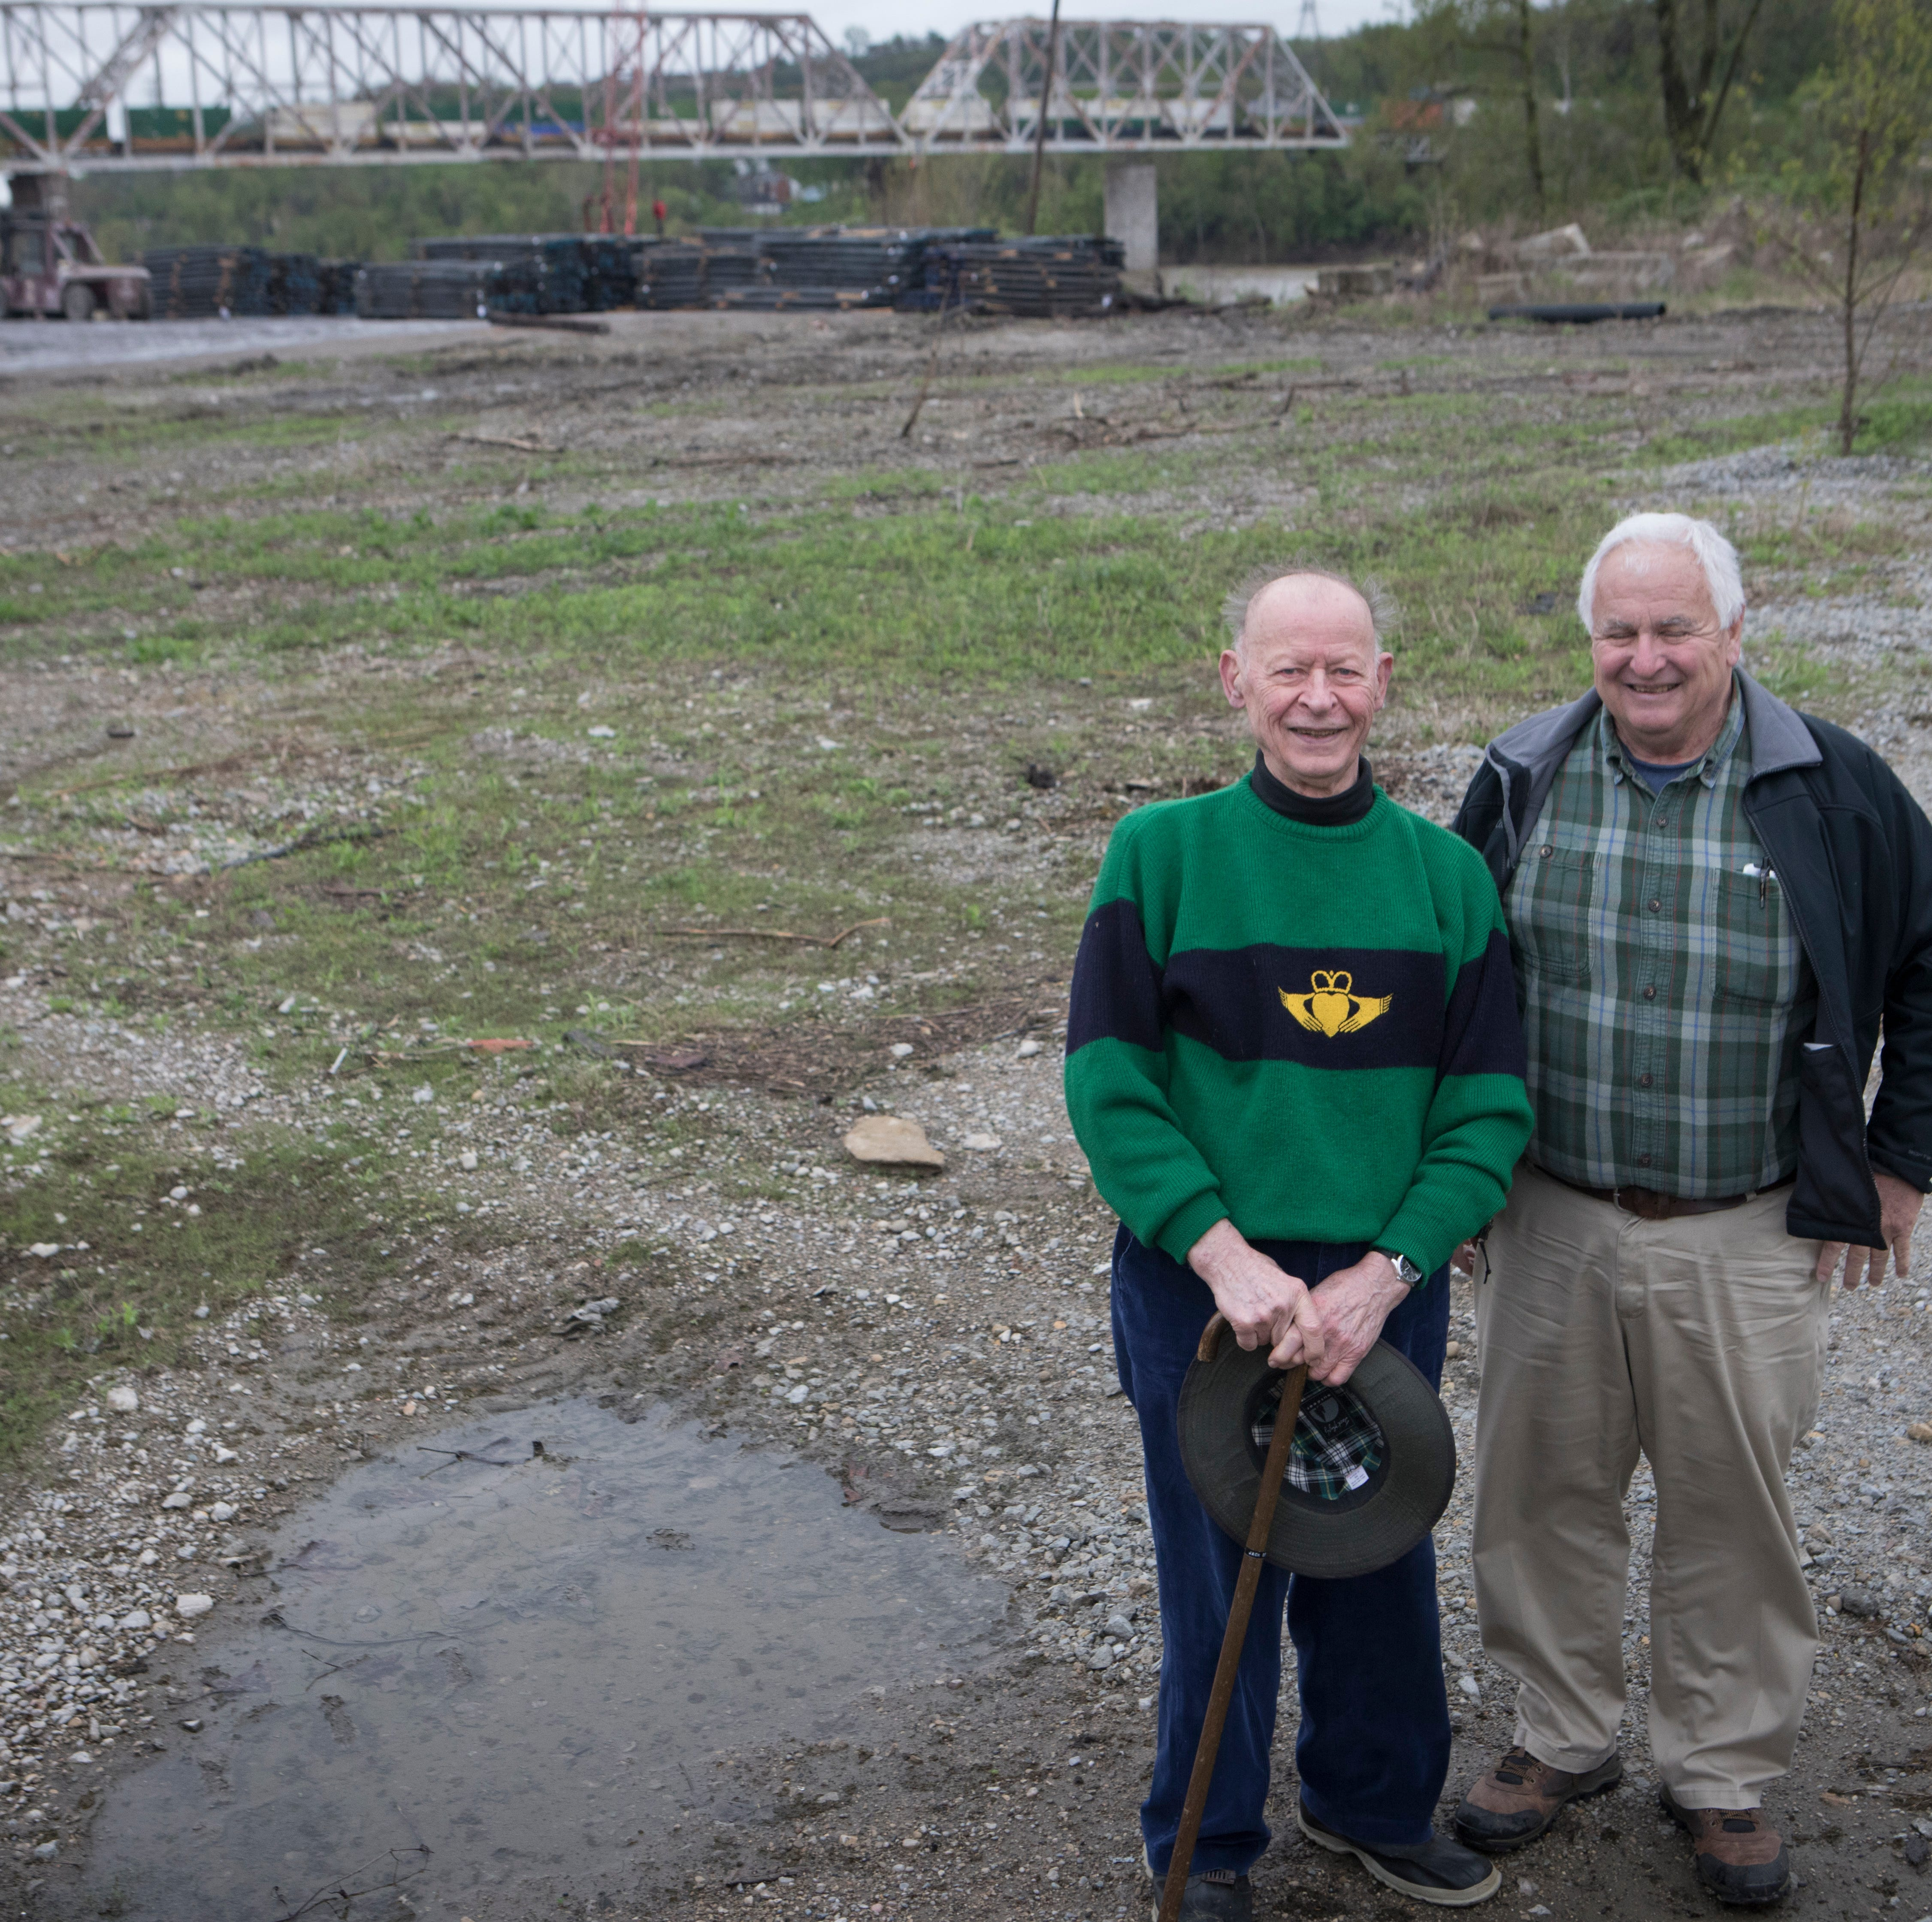 Jack Degano, left, and Gregory Lang stand on public land that is planned to be a park at Evan's Field on Friday, April 19, 2019. Behind them is a site where Hilltop Concrete is hoping to move from their location from their current location near Paul Brown Stadium.